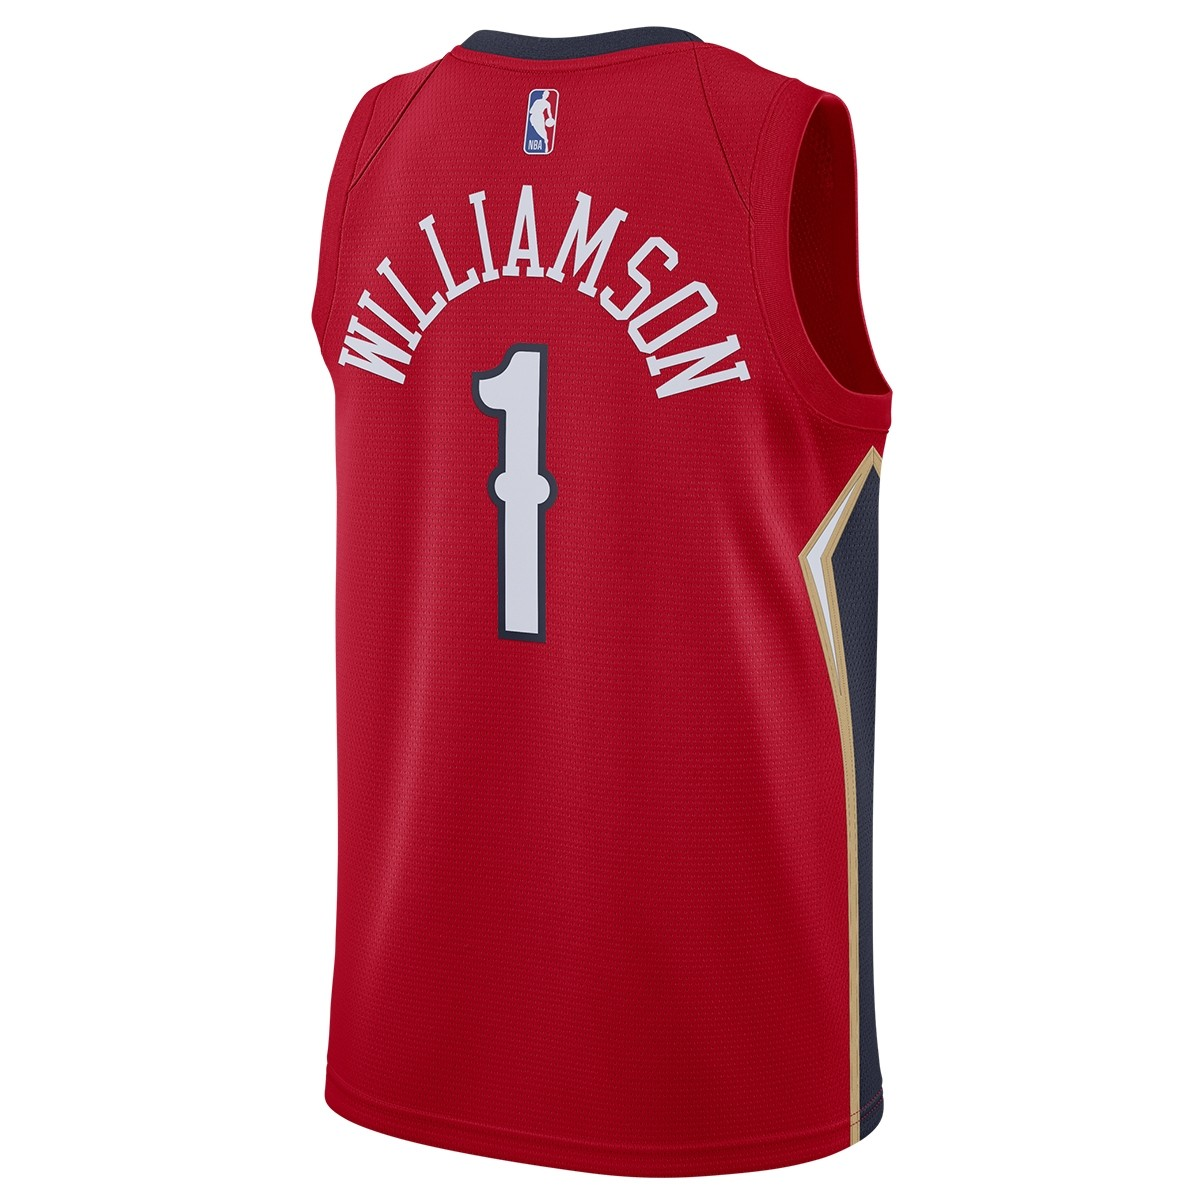 Jordan NBA Pelicans Swingman Jersey Zion Williamson 'Statement Edition'-CV9486-660